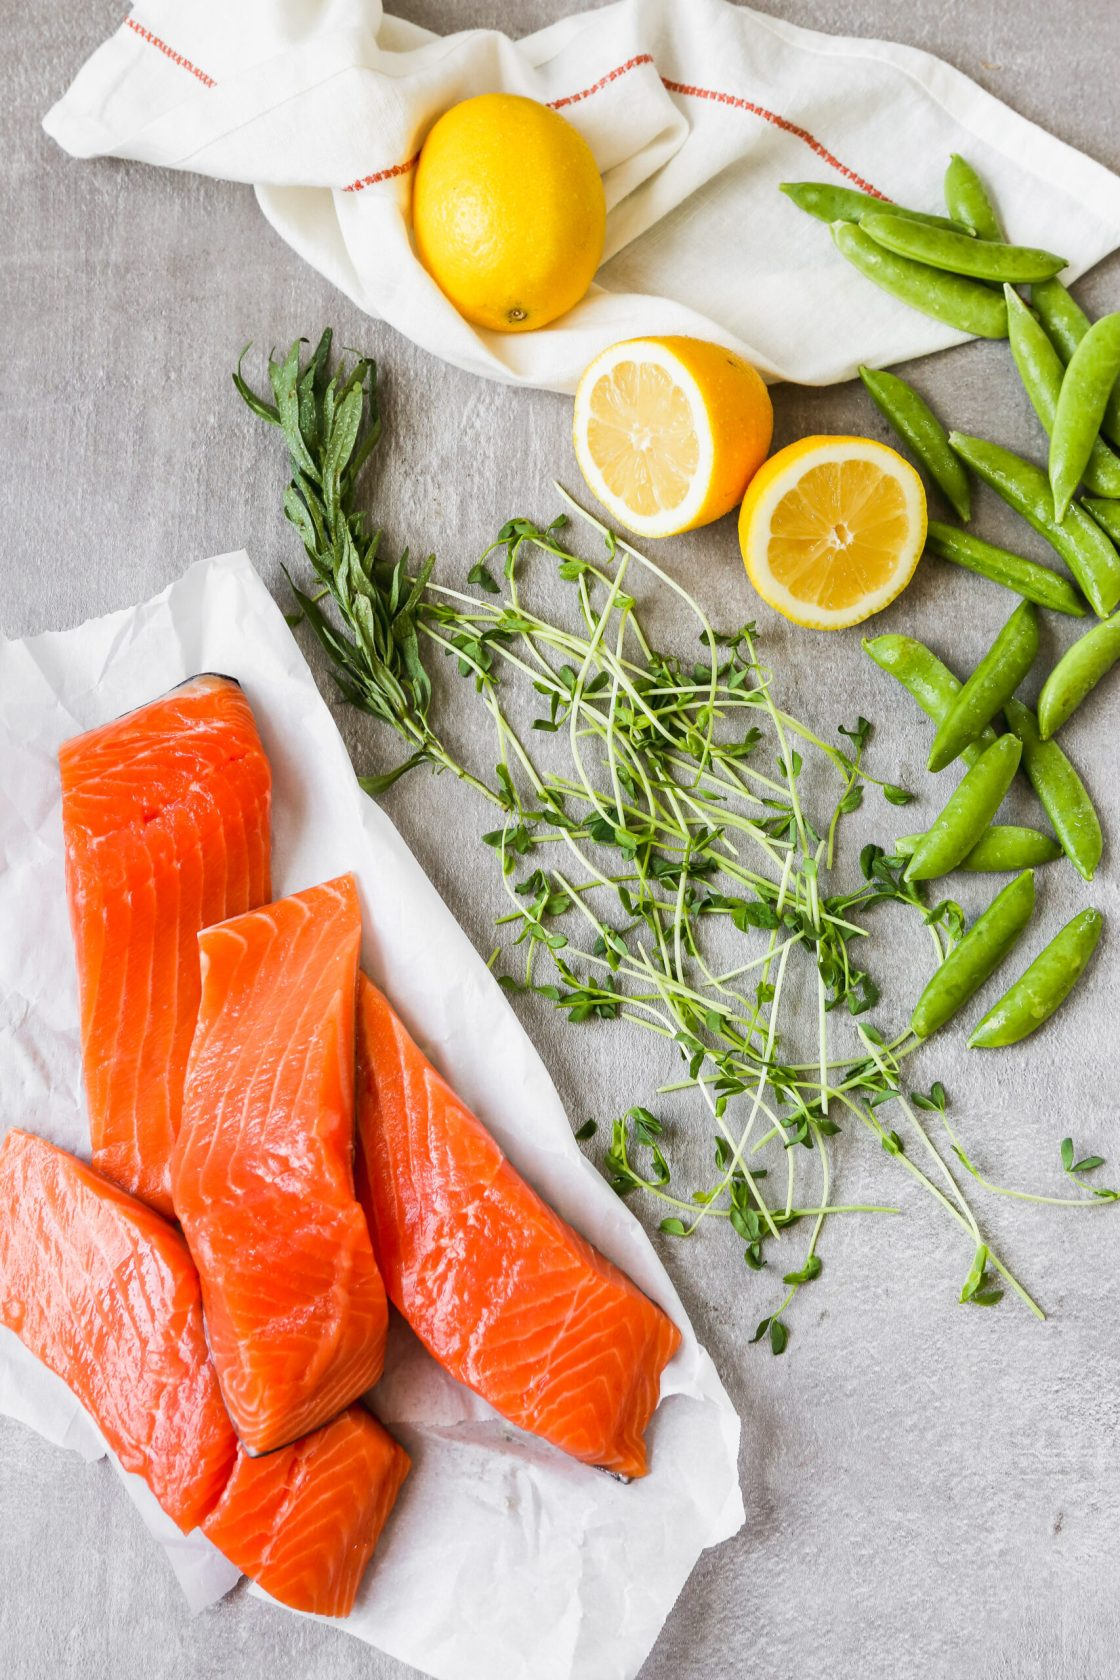 raw salmon fillets, snap peas, lemons, pea shoots, and tarragon arranged on a gray backgound